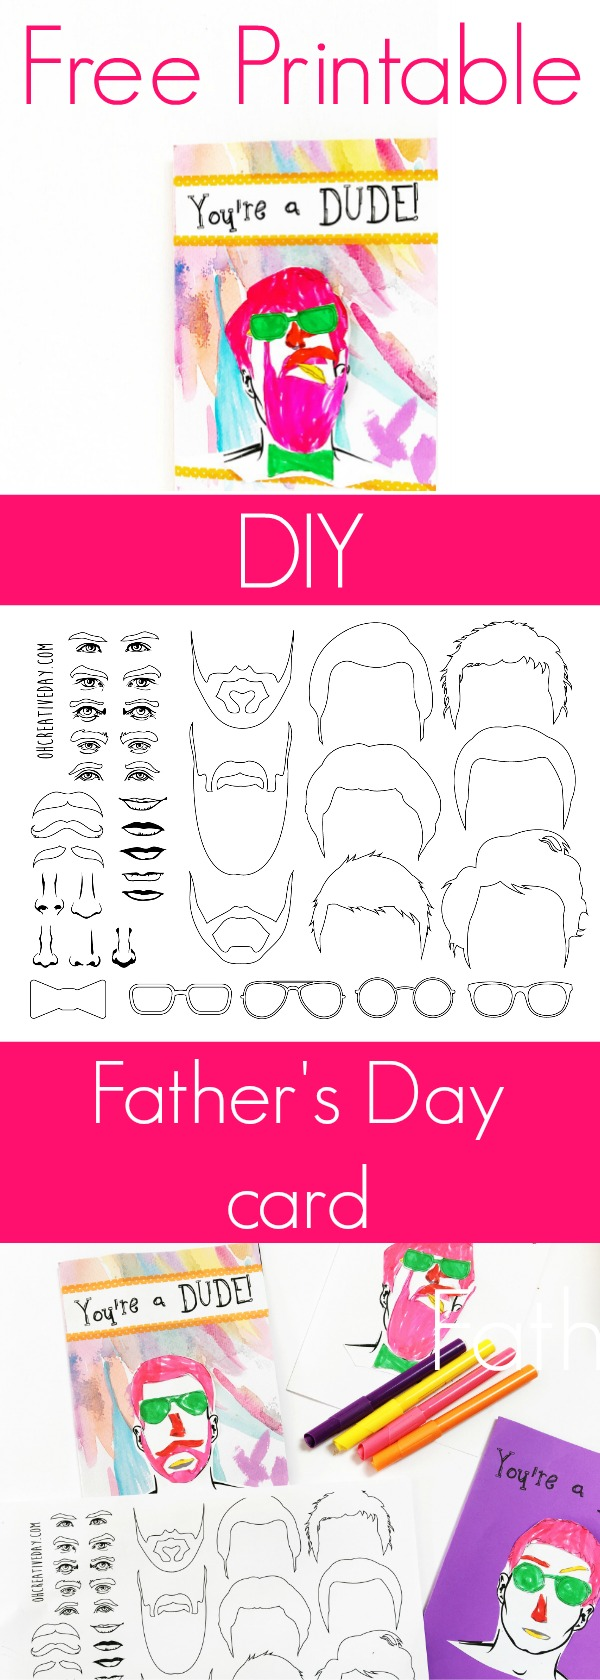 Celebrate the dude in your life with this free printable Father's Day card that the kids can colour in and create themselves. #kidscrafts #fathersday #fathersdaycard